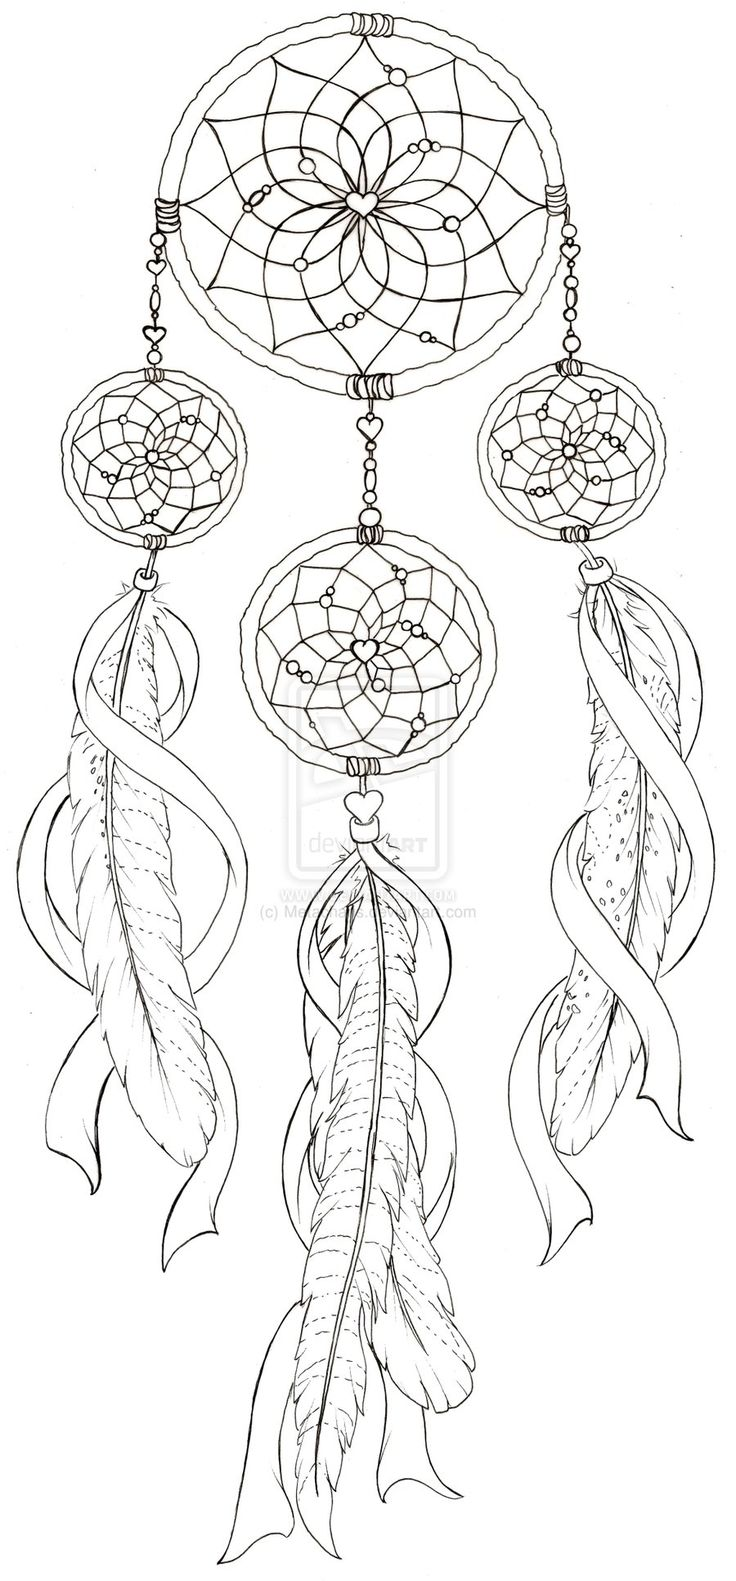 dream catcher with pheasant feather tattoo by metacharis on deviantart my tattoo work. Black Bedroom Furniture Sets. Home Design Ideas